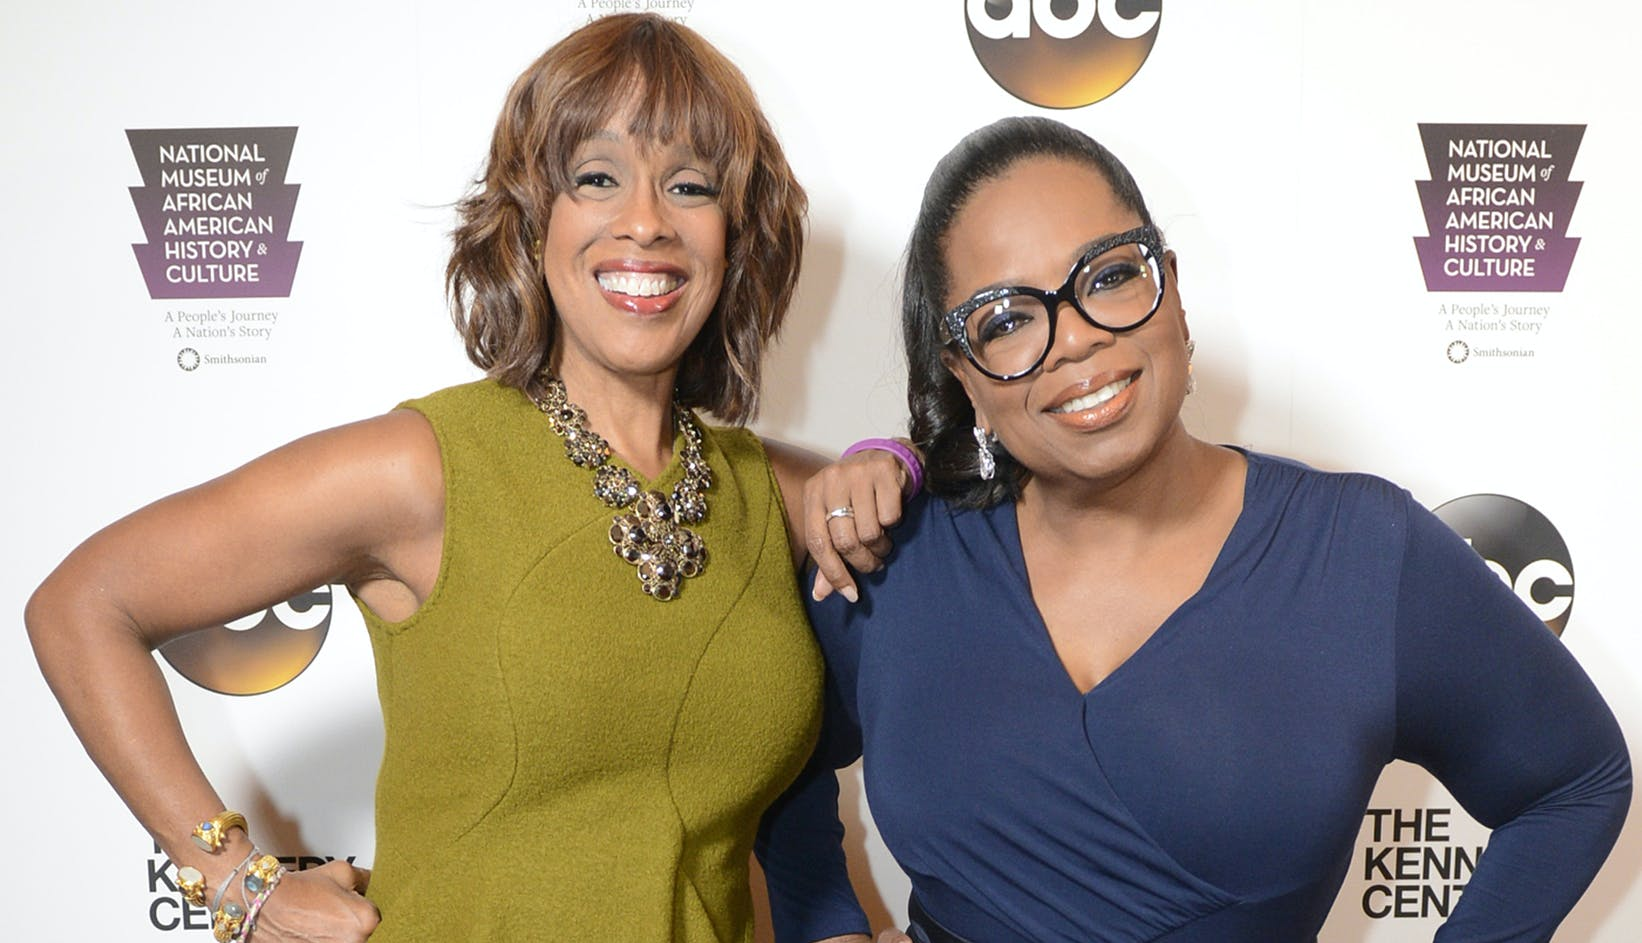 What Do Oprah & Gayle Give Each Other for the Holidays? The Answer May Surprise You